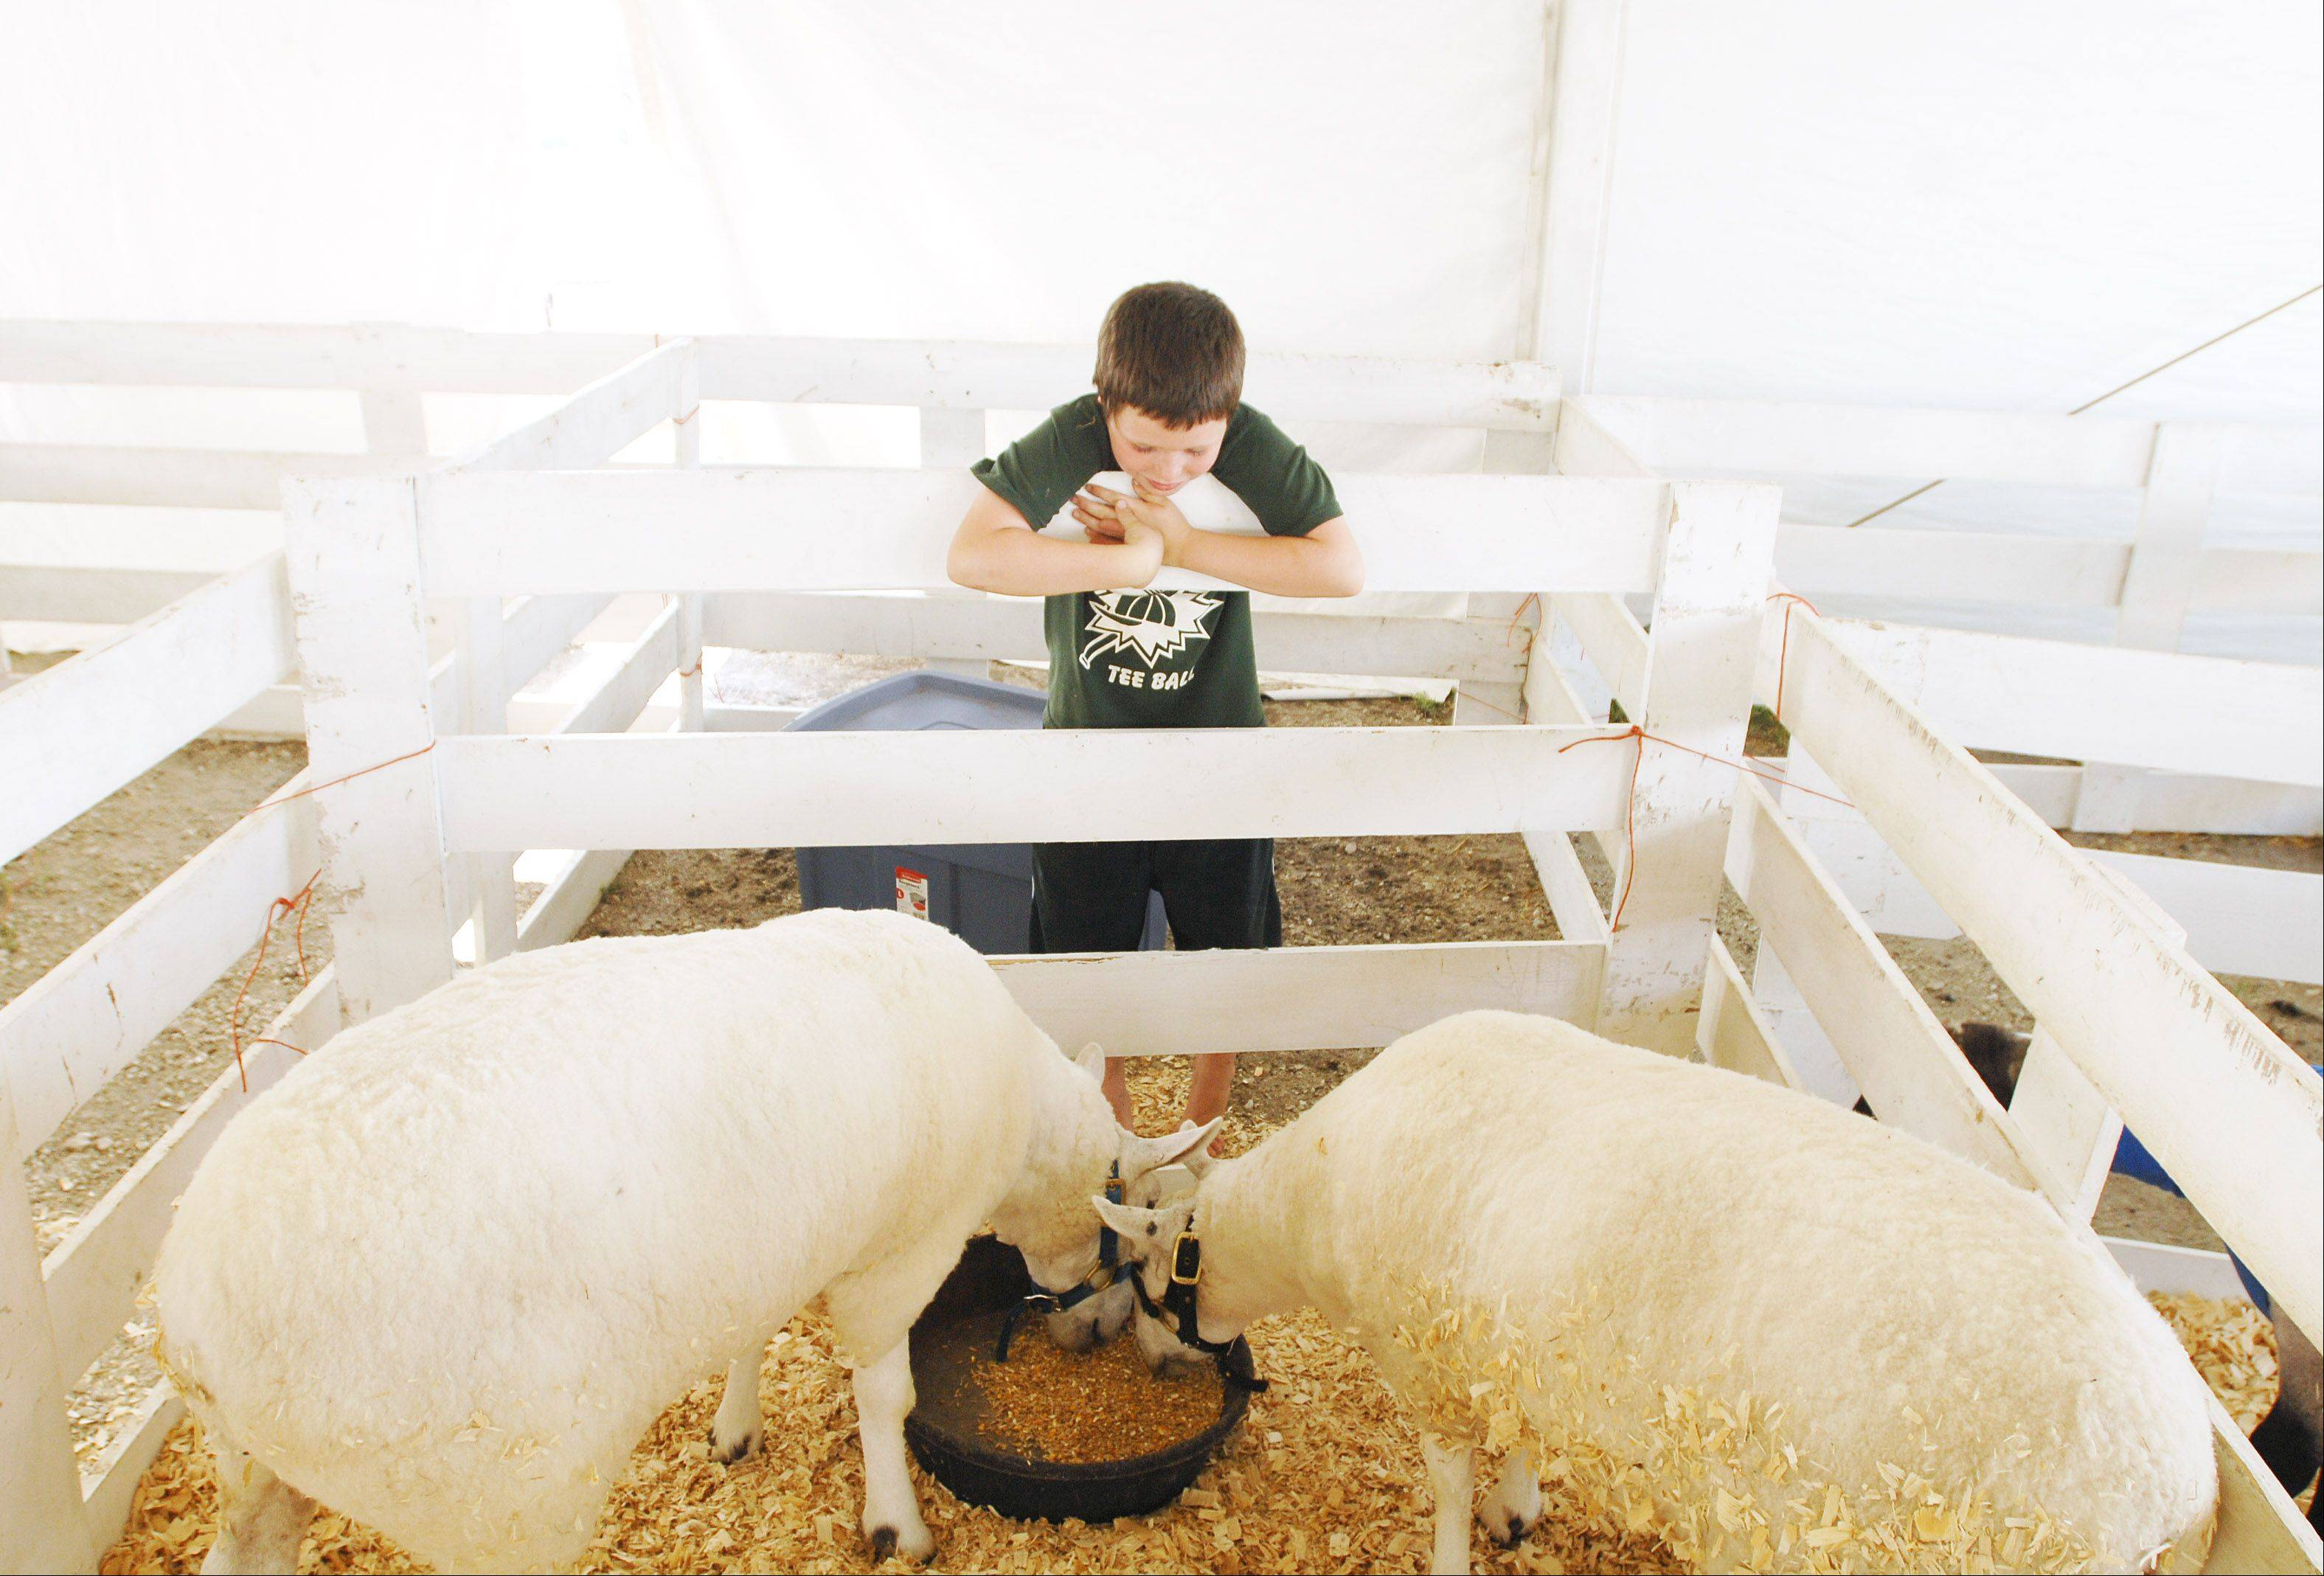 Competition is fierce for animal exhibitors at the DuPage County Fair